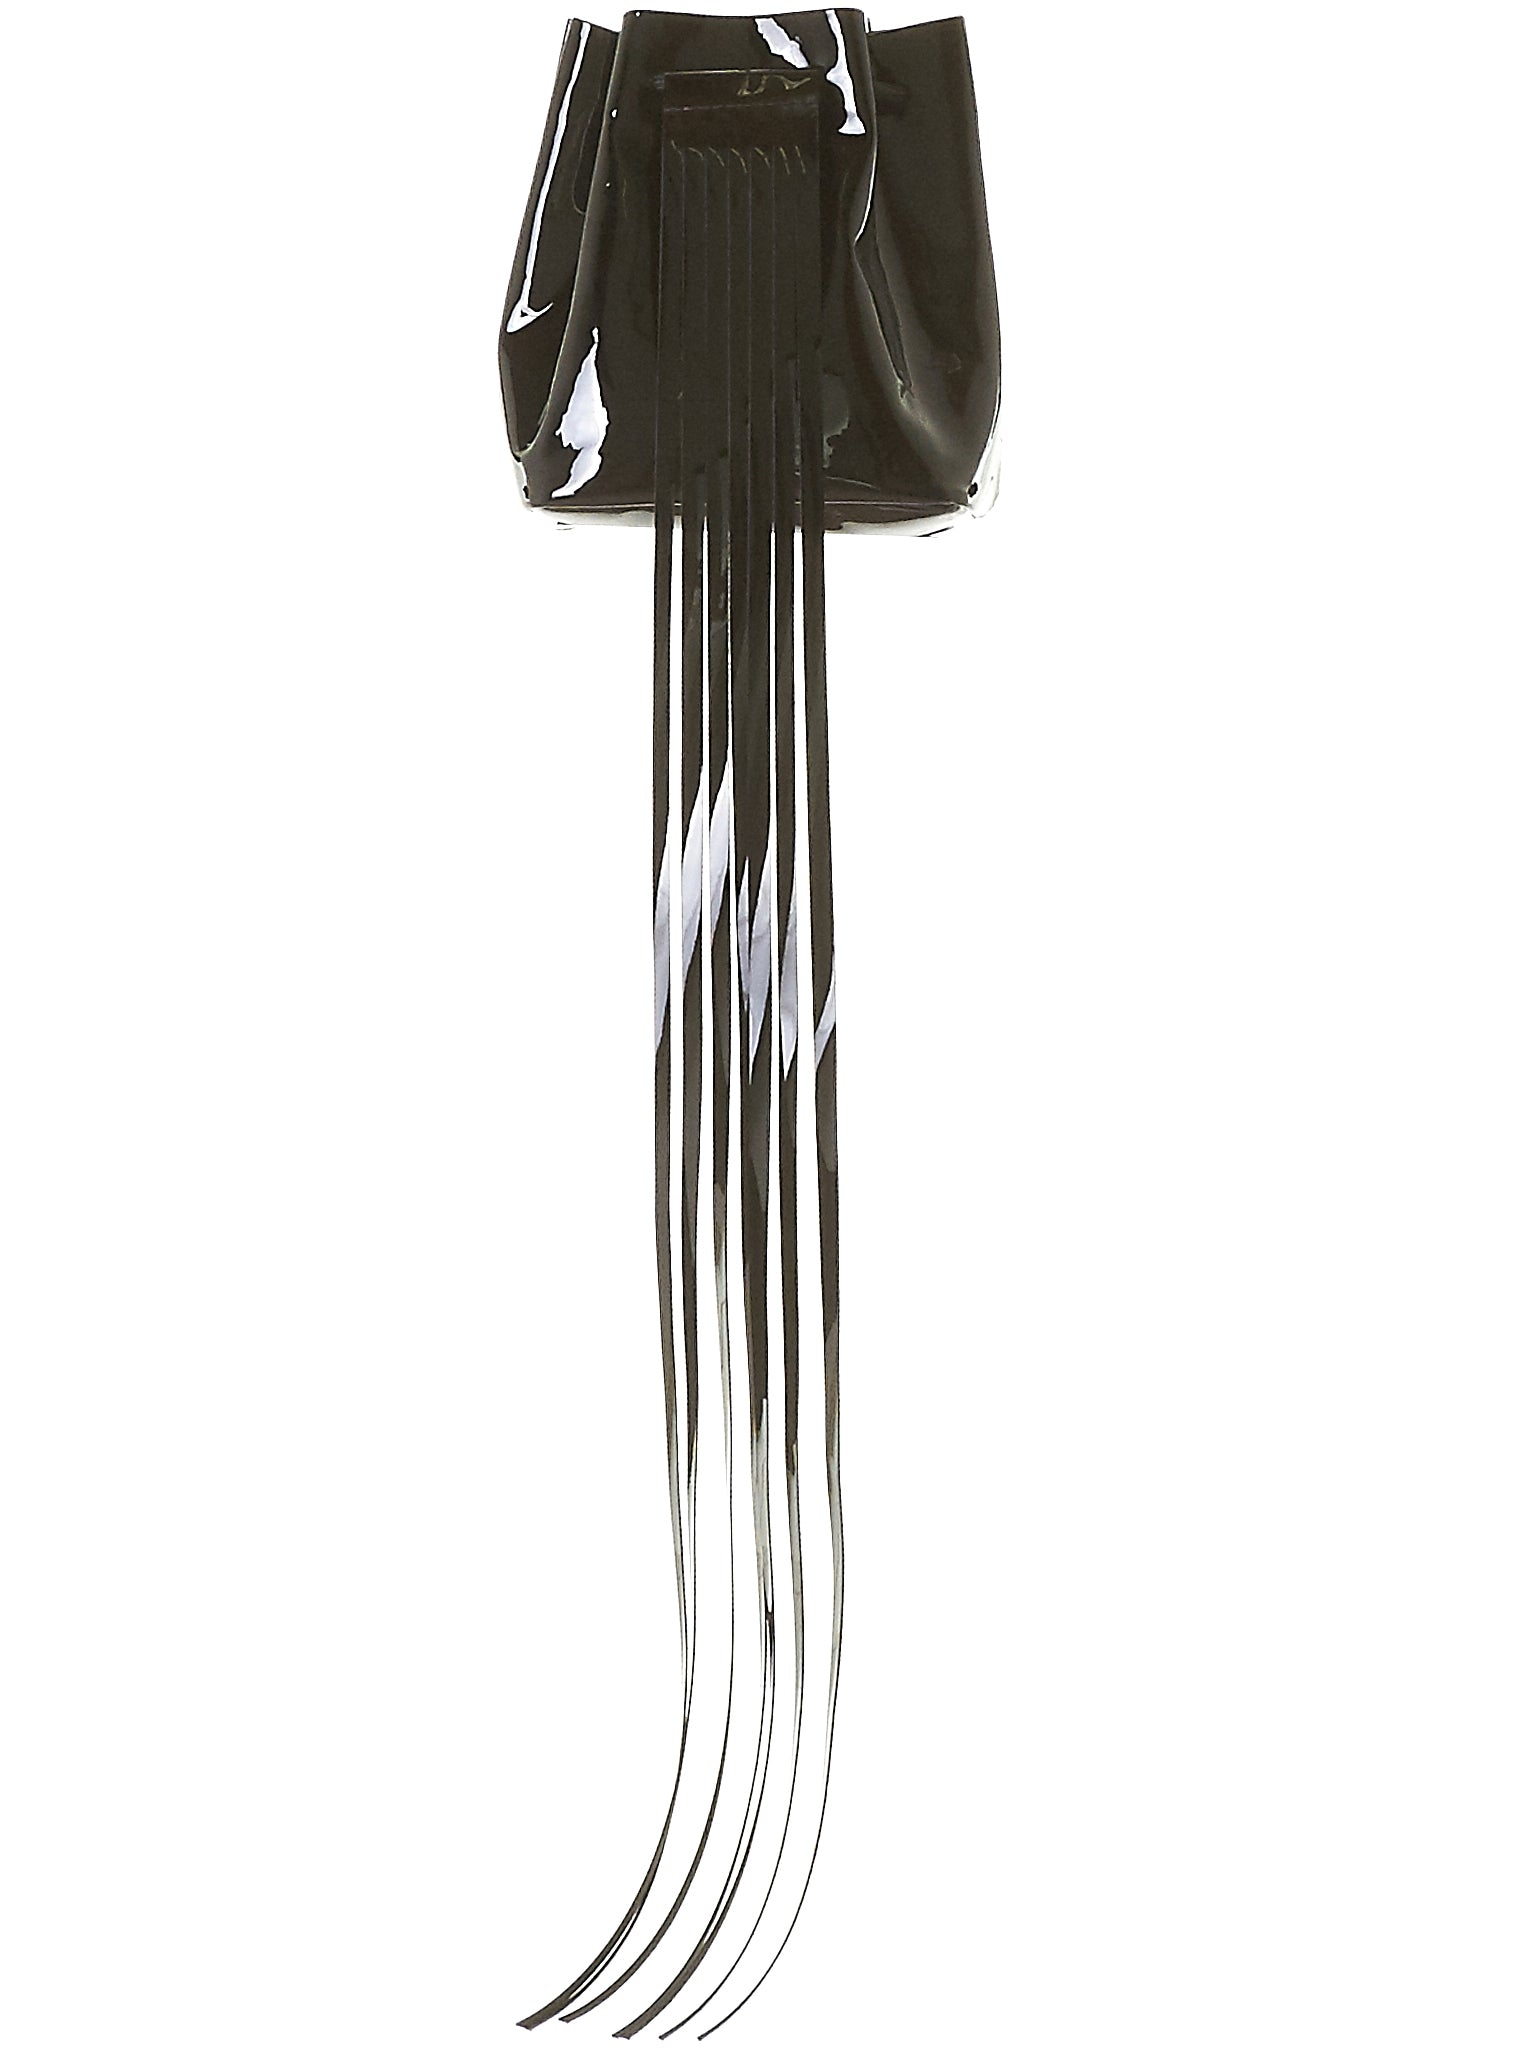 Polished Fringe Bag (3.17 MINI BUCKET BLACK-GLOSSY)